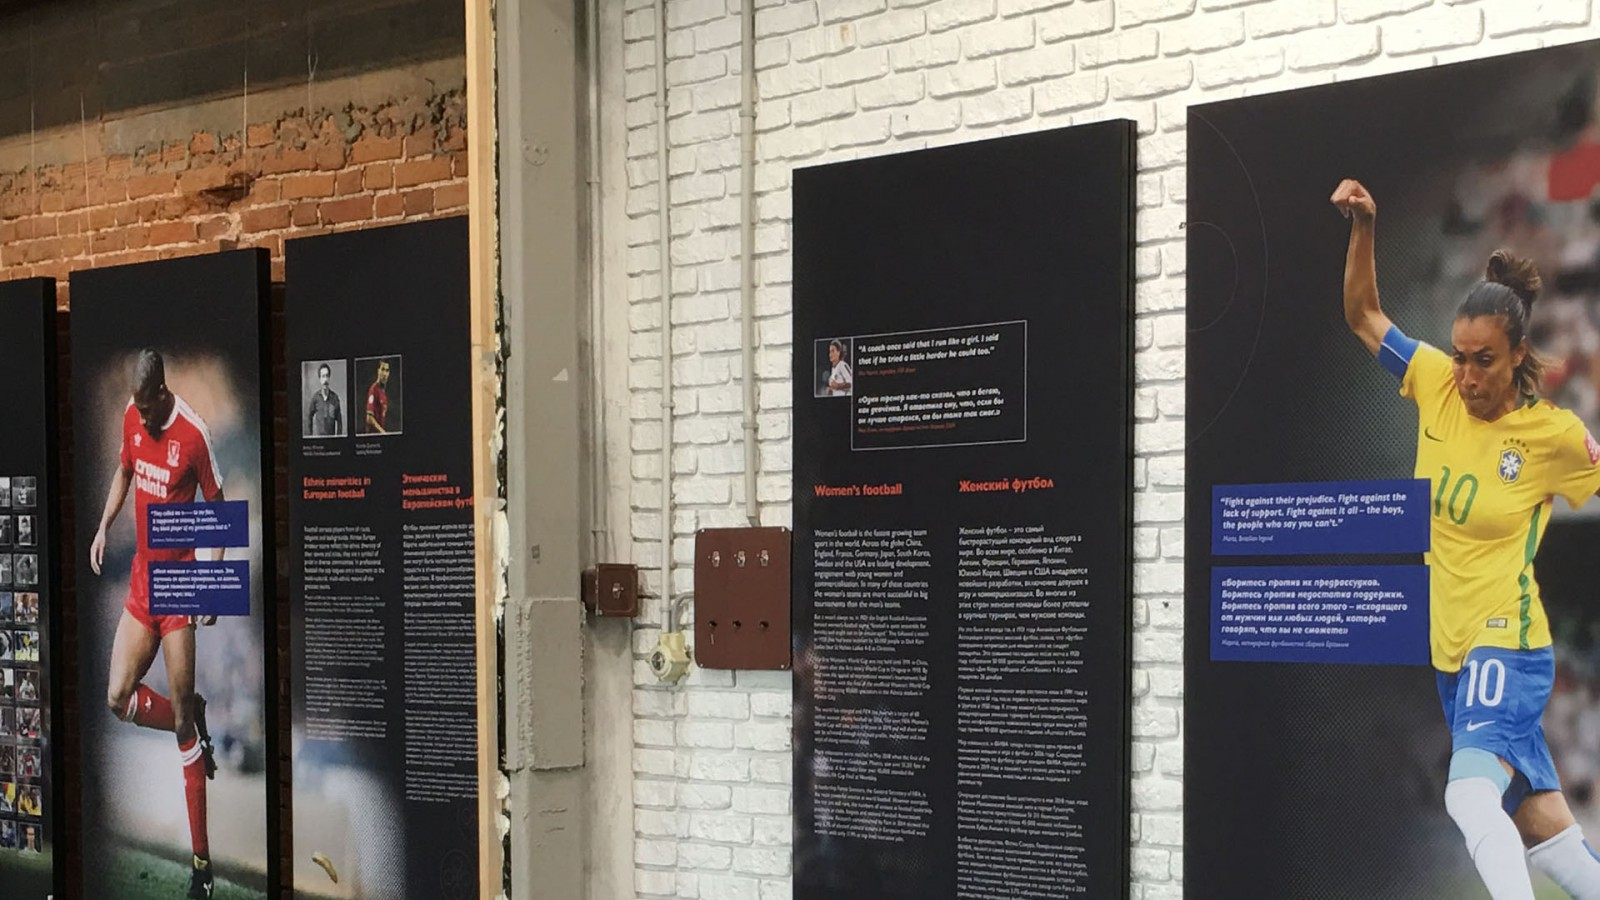 Gallery image for Diversity House Exhibition project